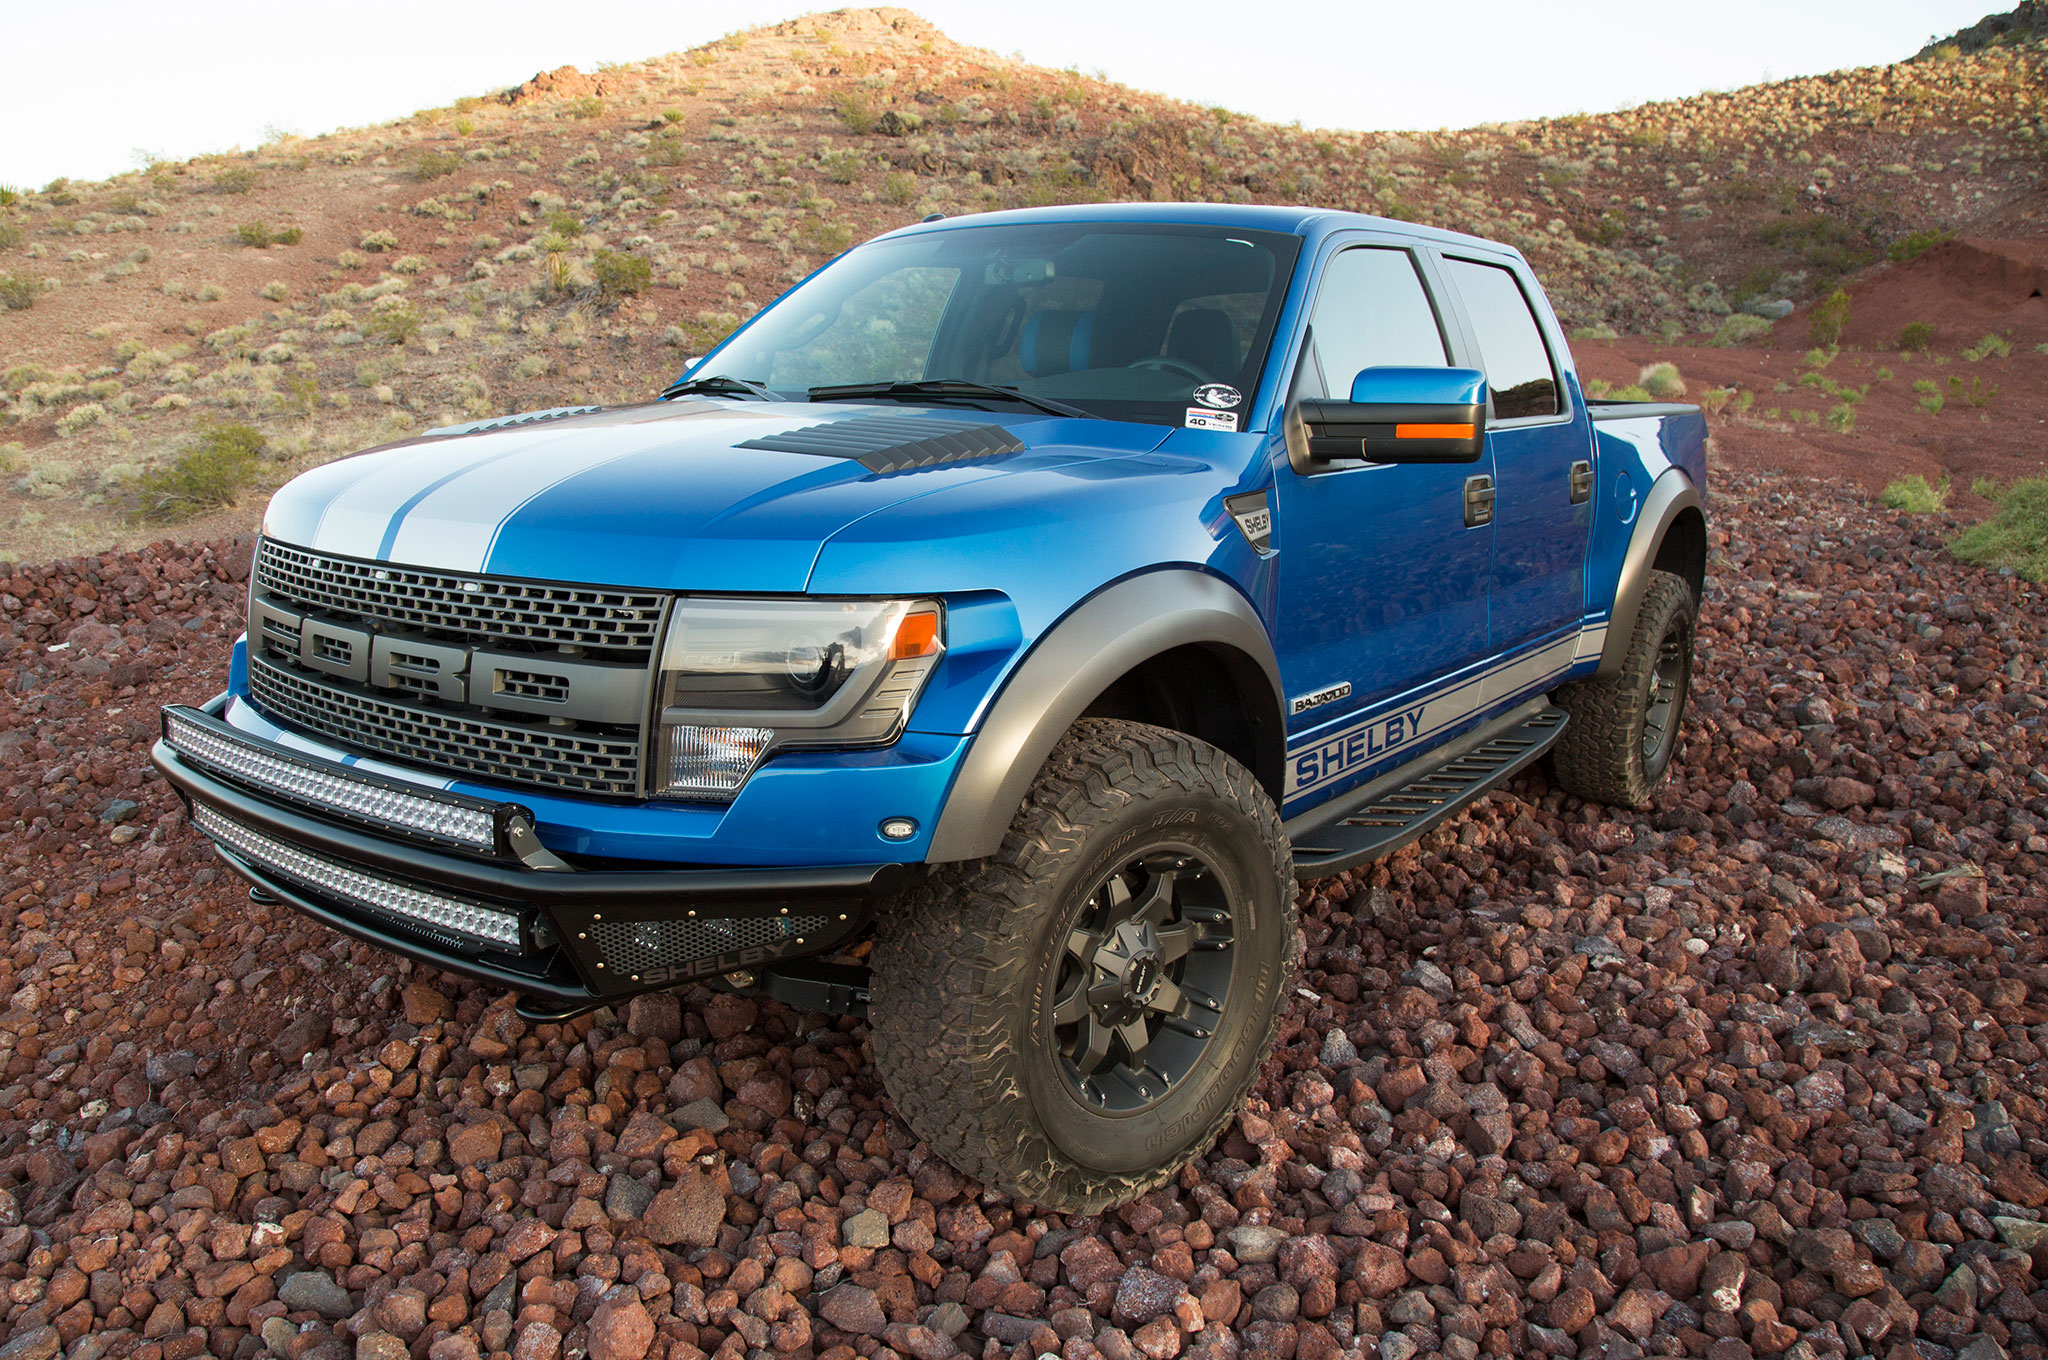 Shelby American Baja 700 Ford F150 SVT Raptor Packs 700 HP